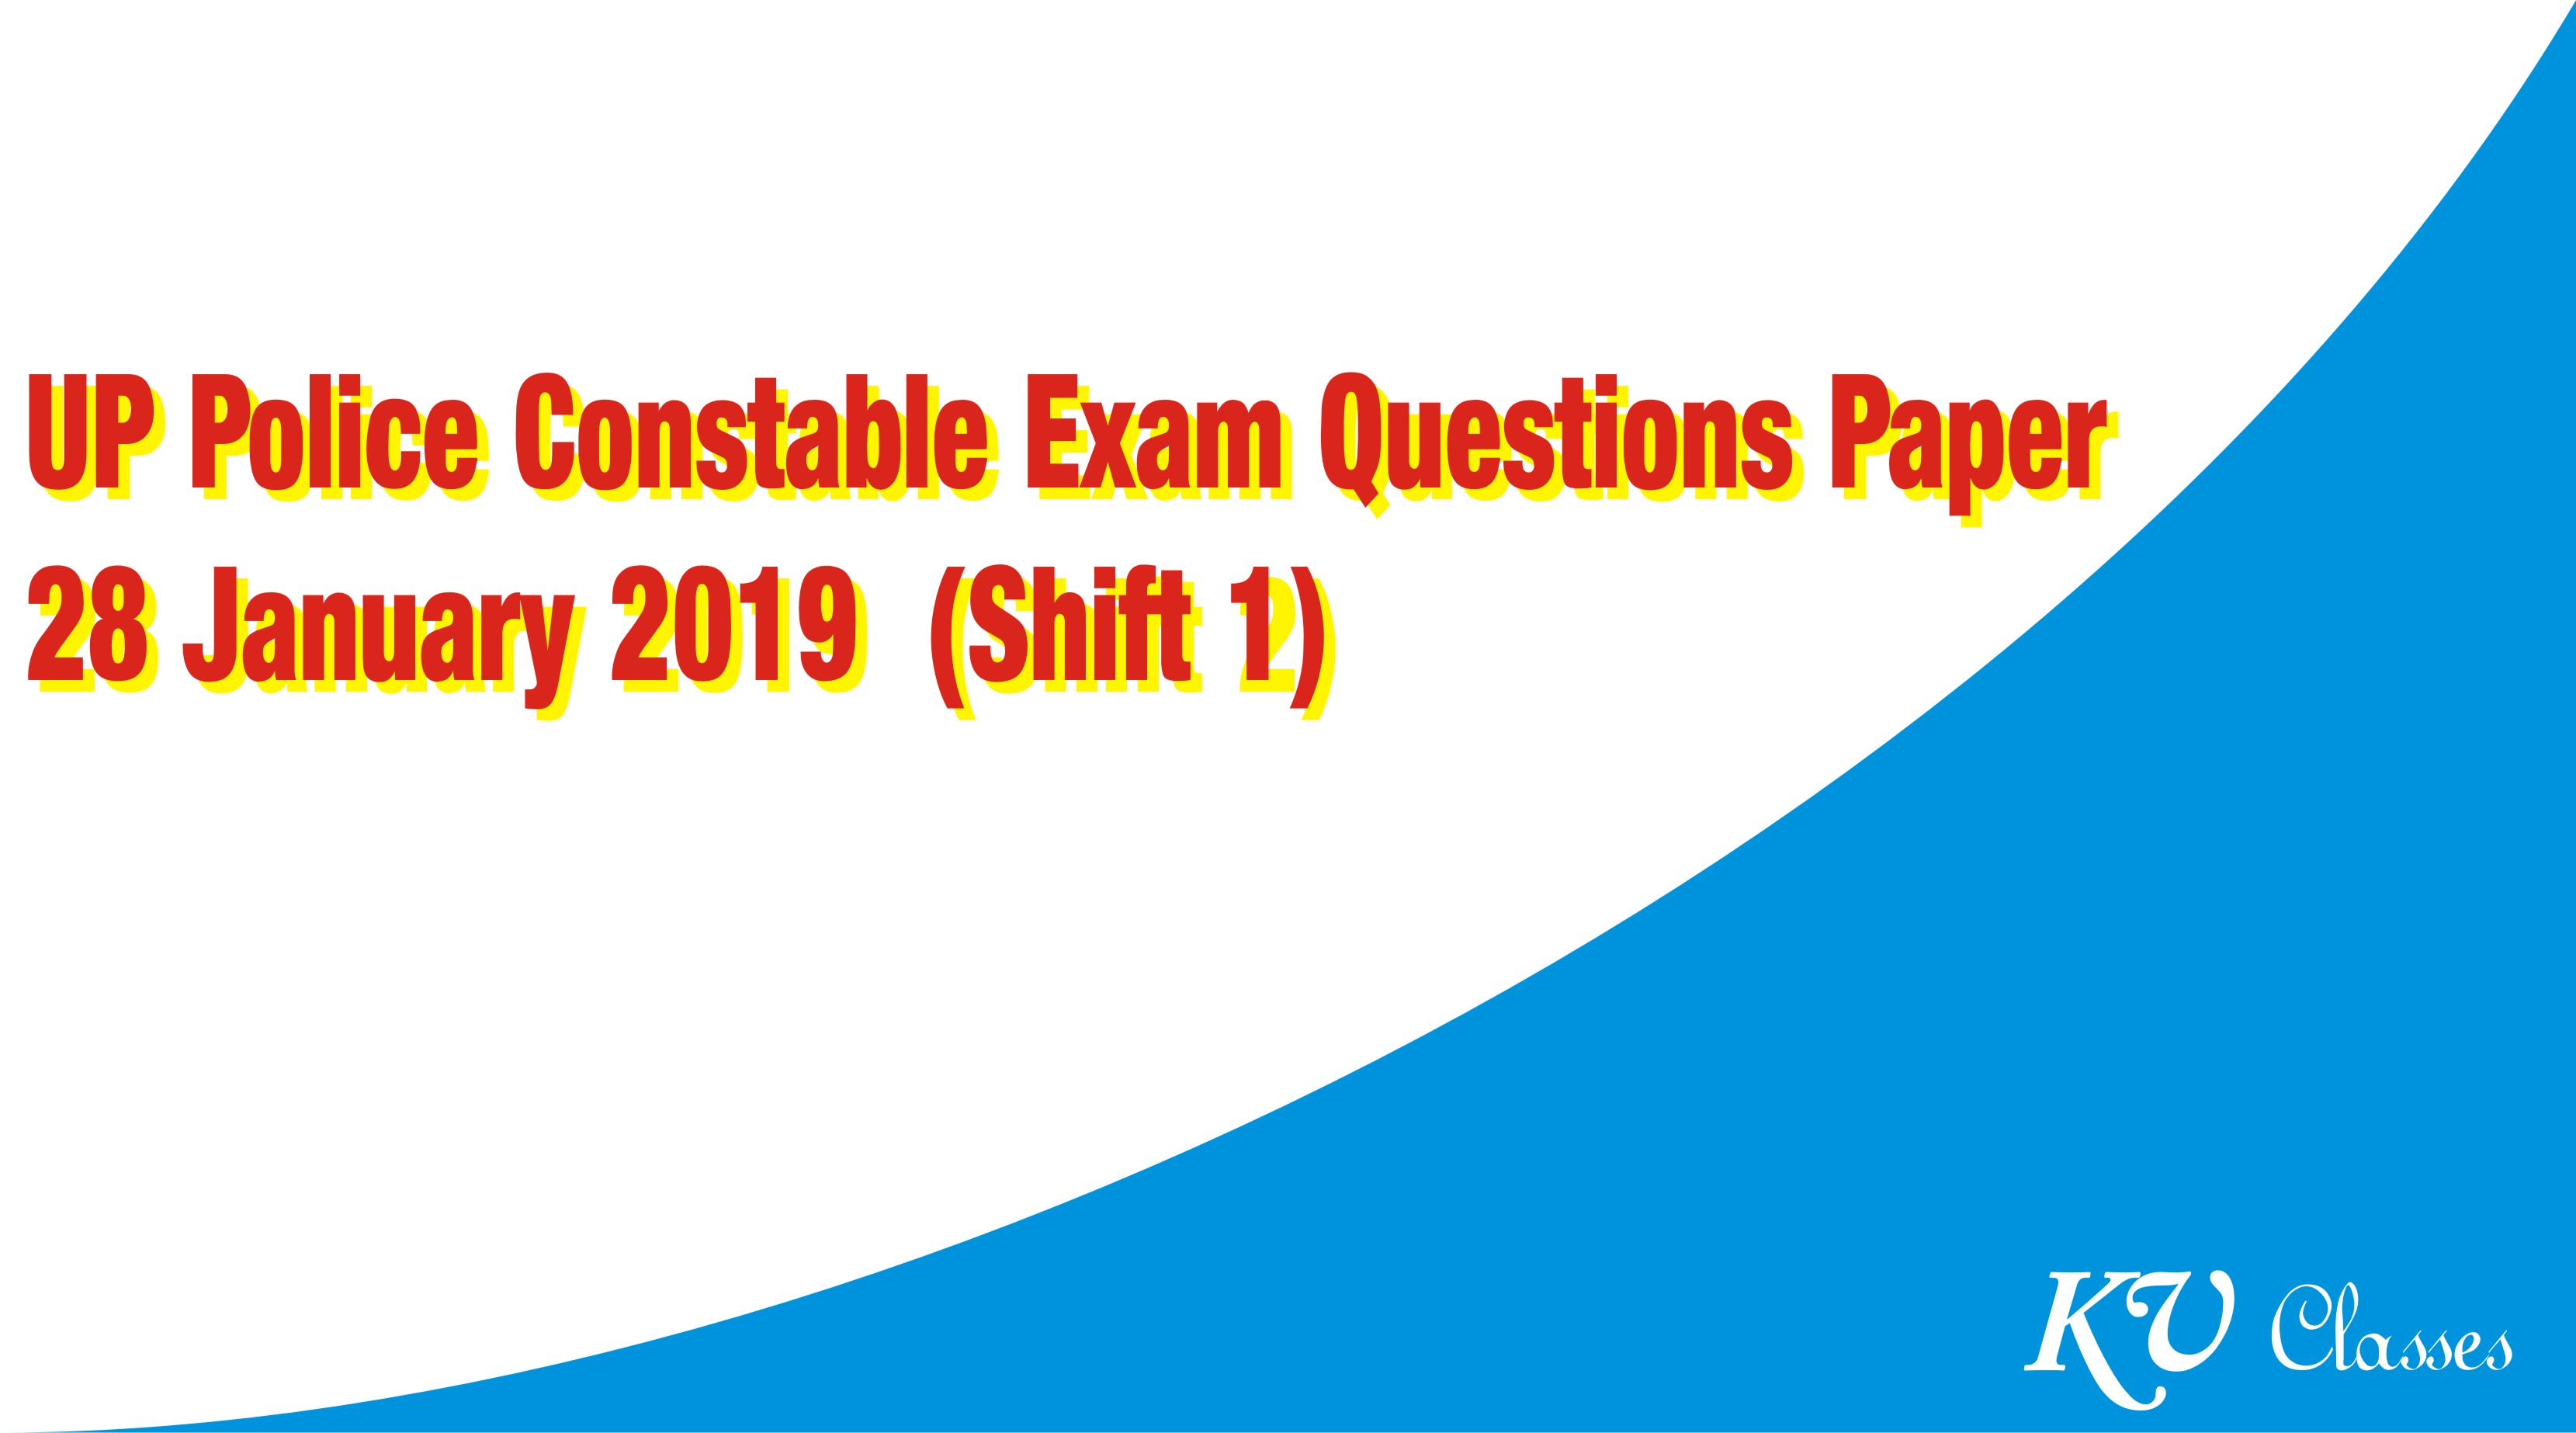 UP Police Constable 28 January 2019 Exam Questions Paper (Shift 1)